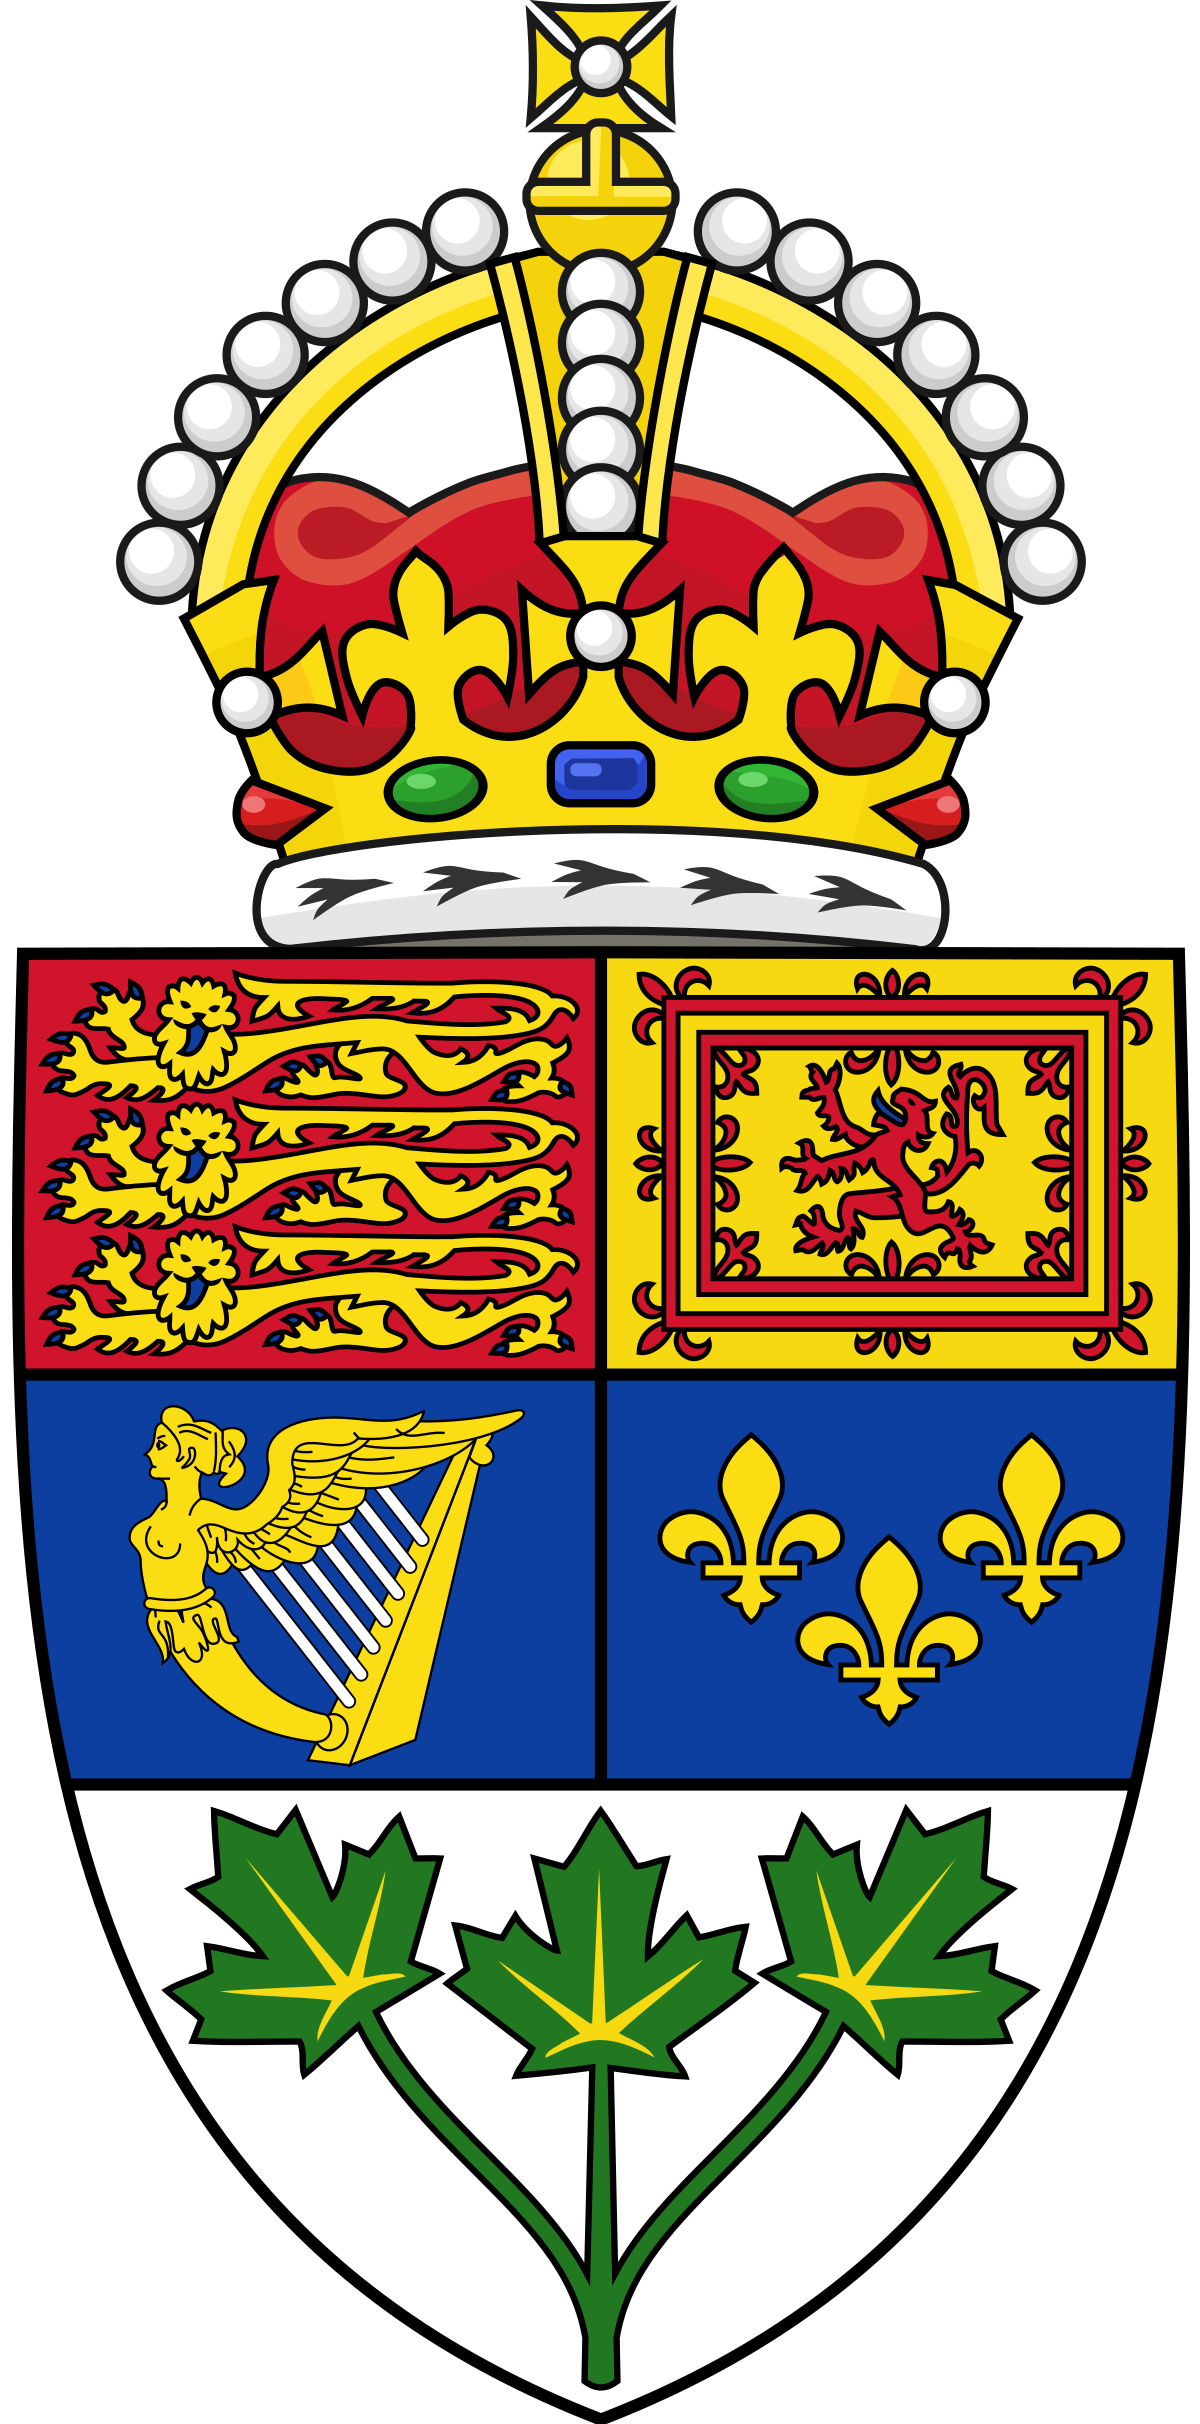 File:Royal Shield of arms of Canada (1921.